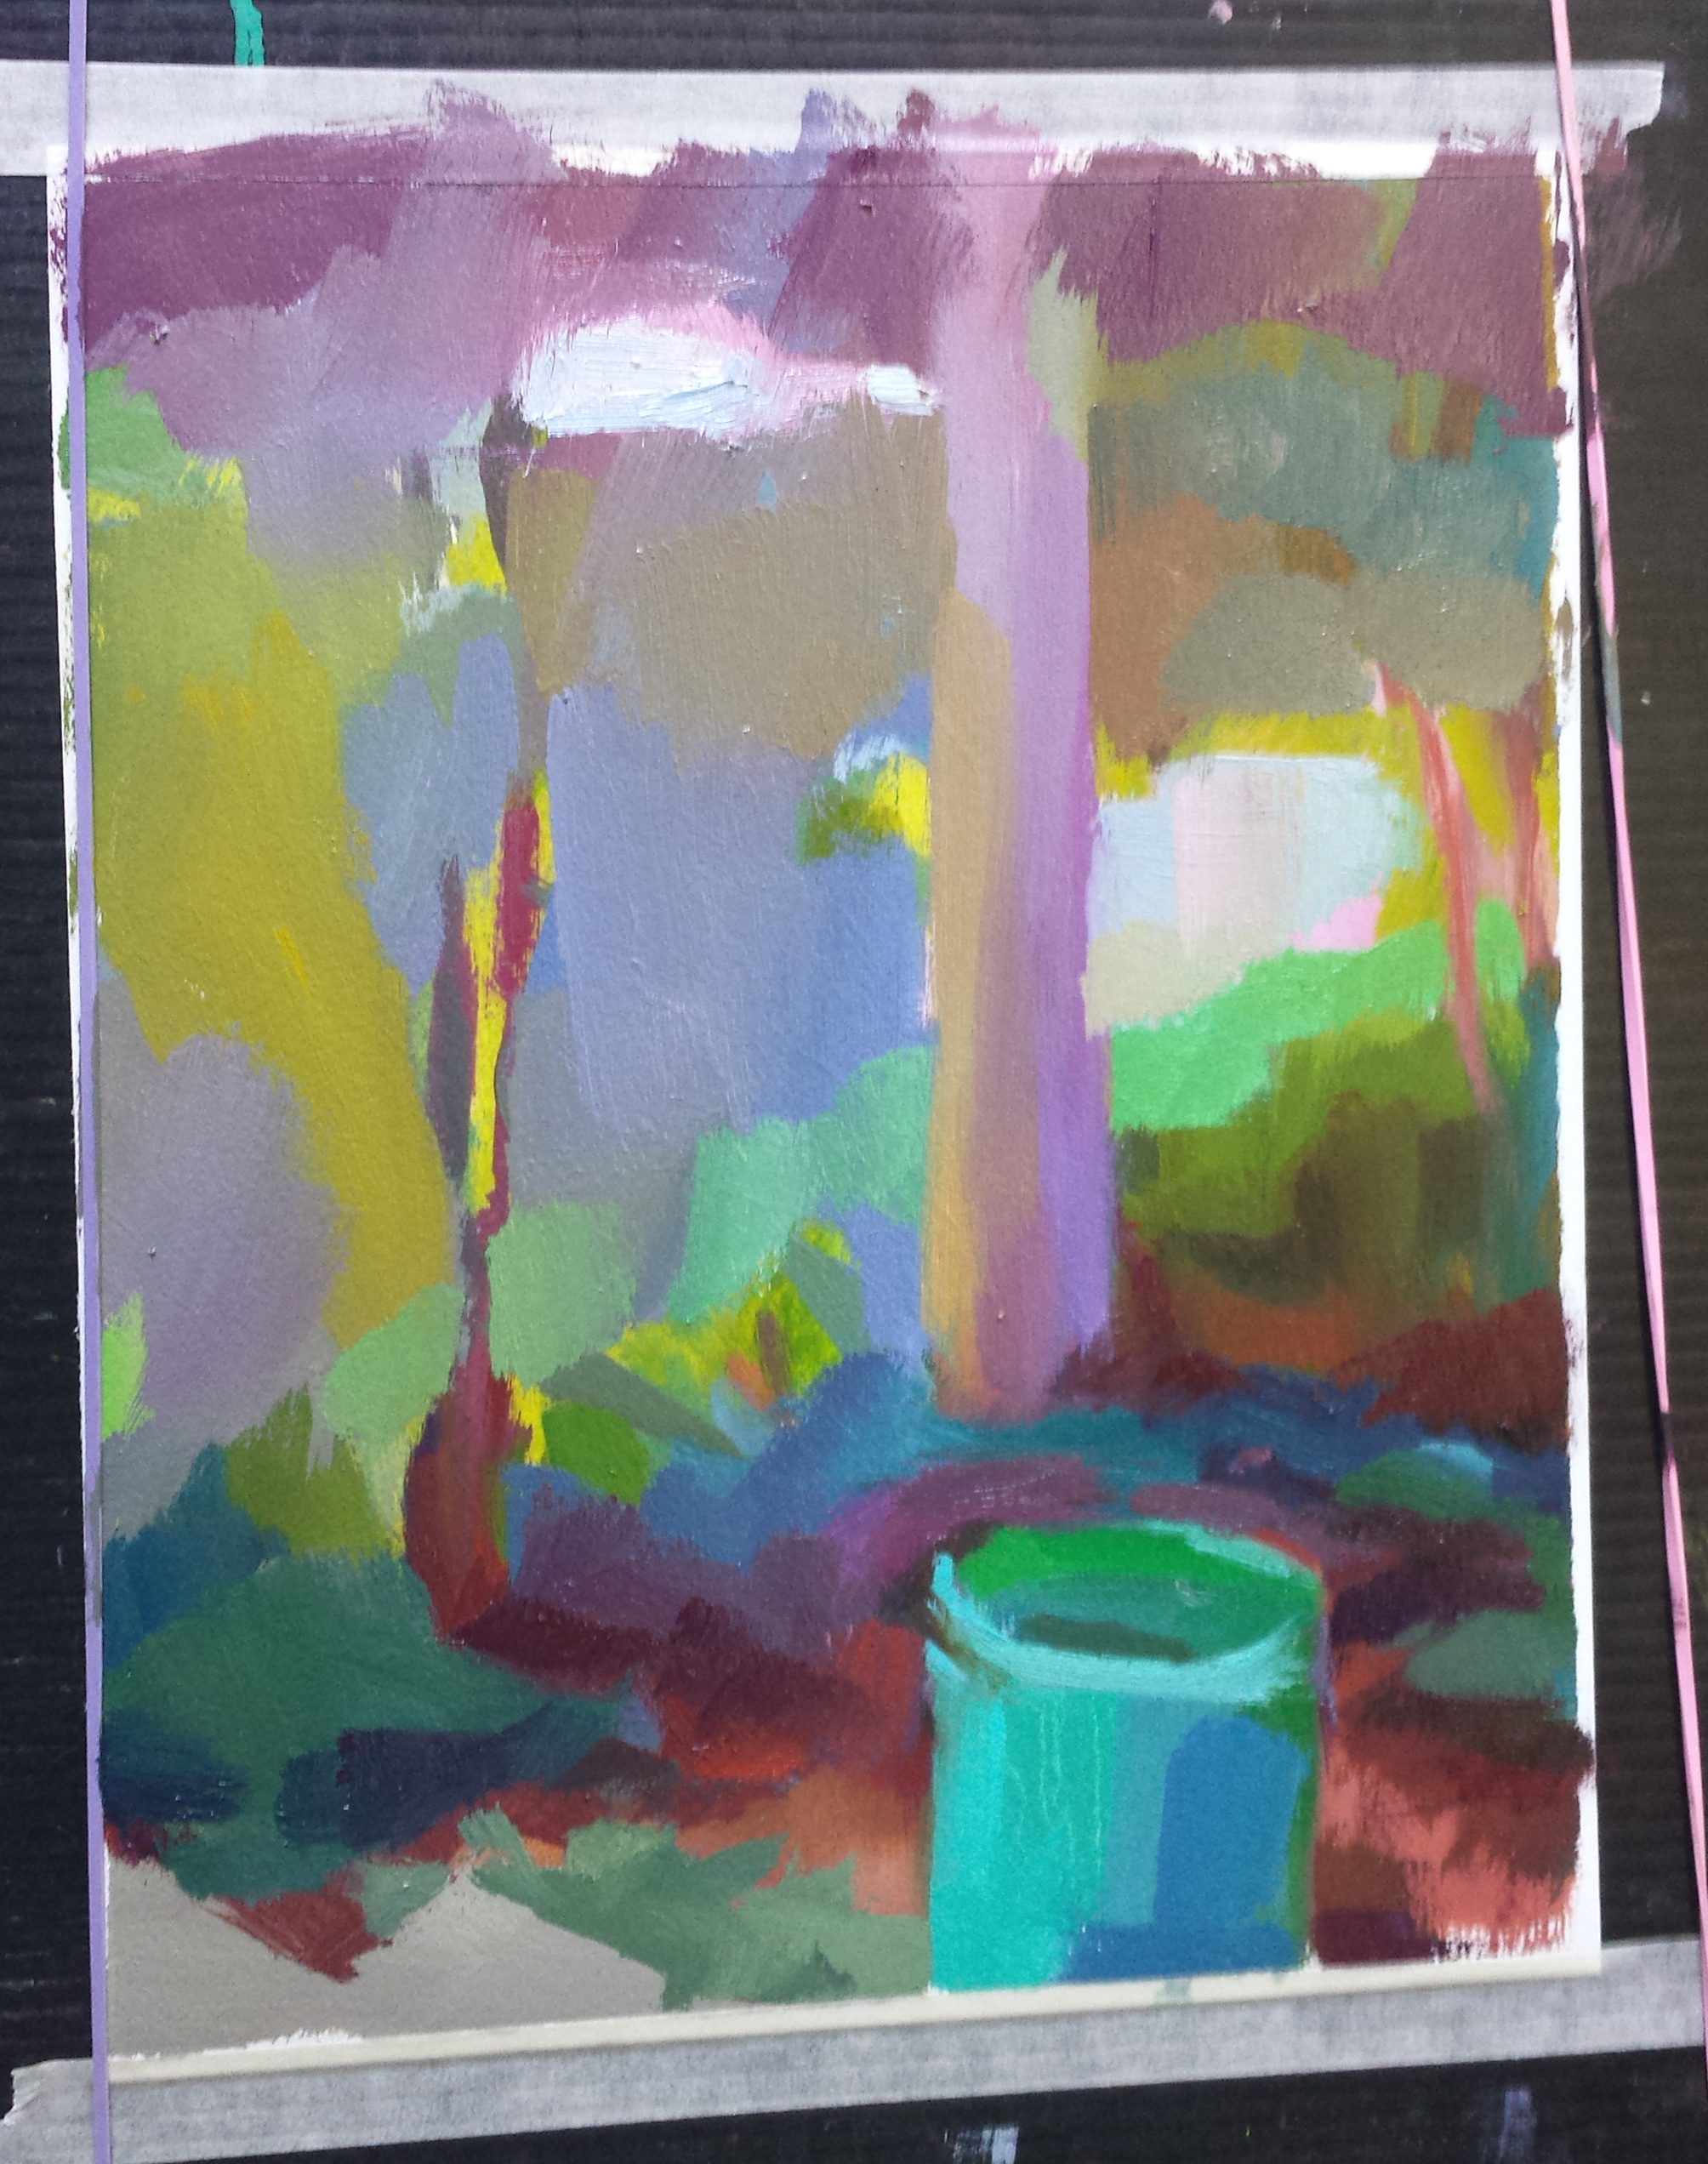 day 3...simple shapes and colors are getting stronger